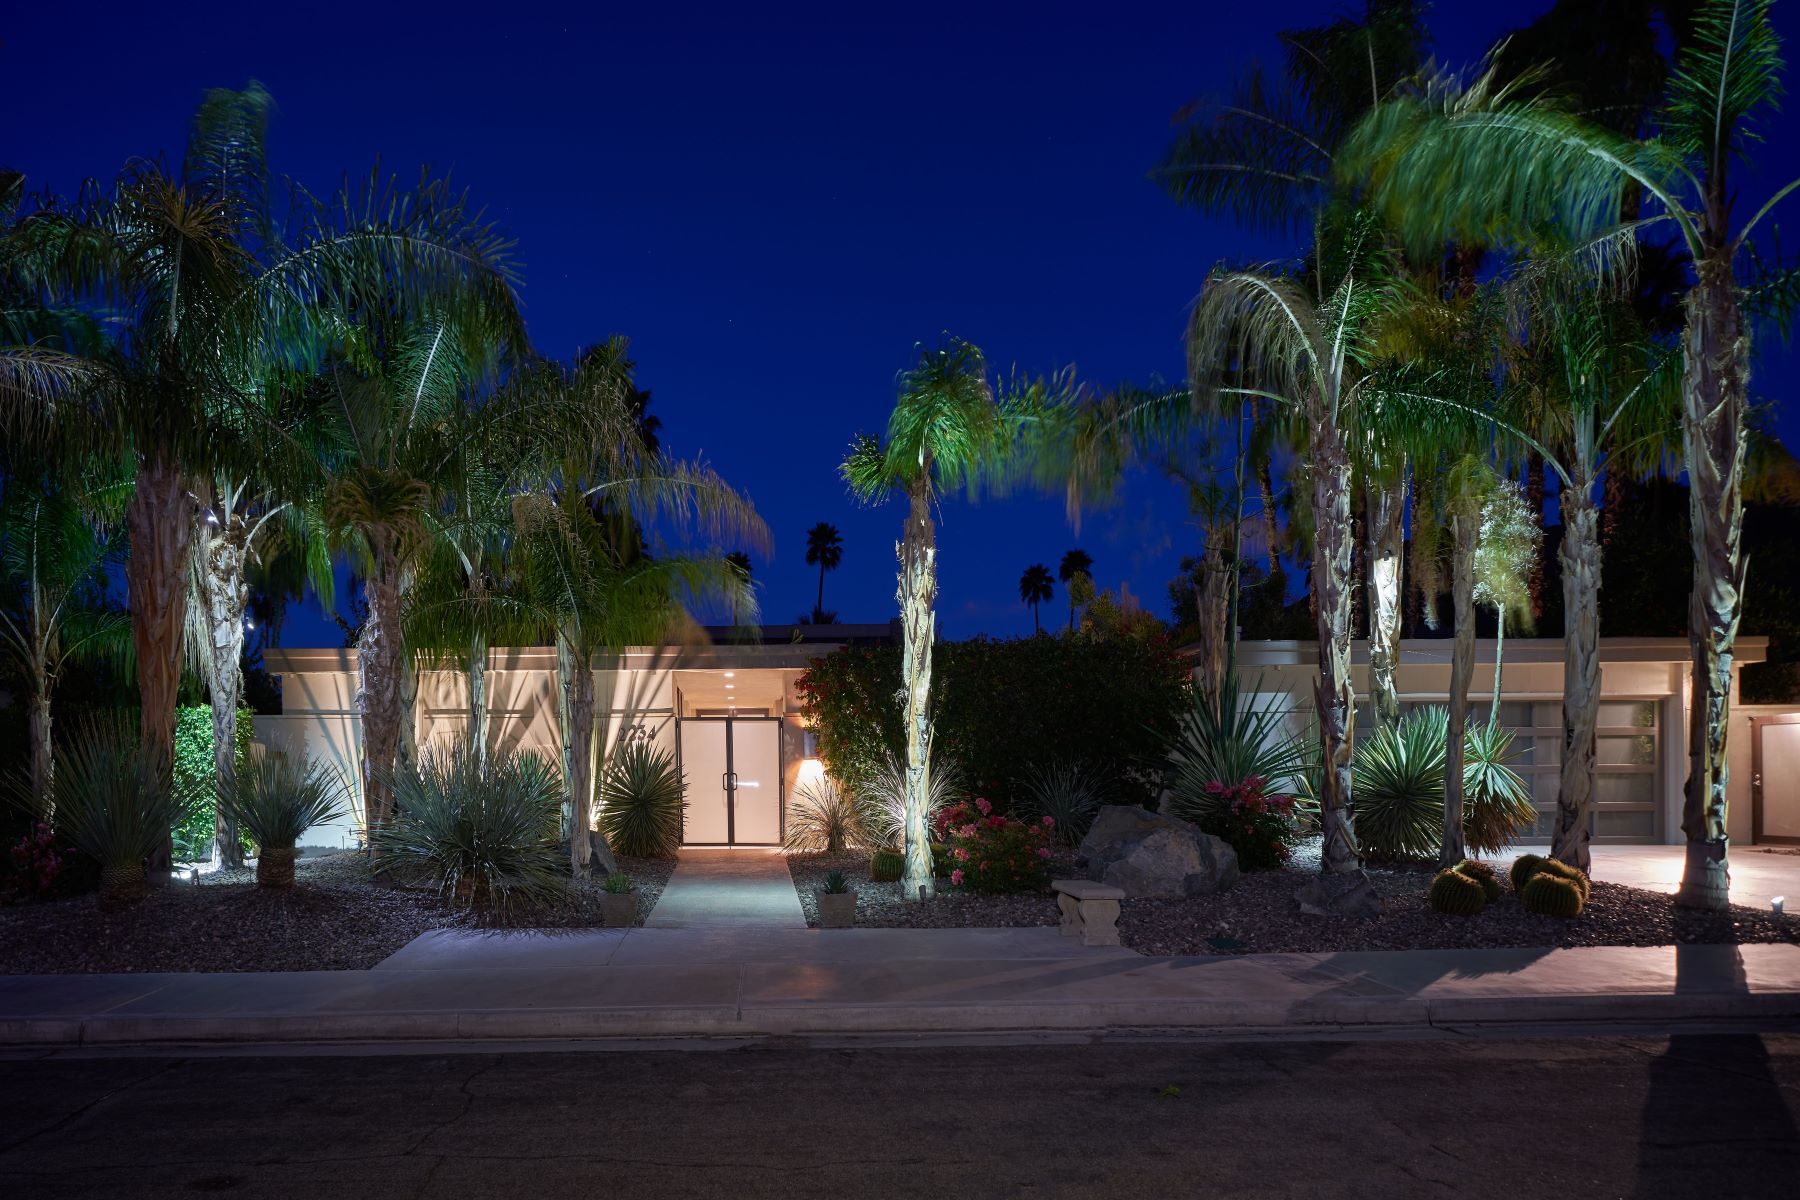 Single Family Home for Sale at 2234 S Caliente Drive 2234 S Caliente Drive Palm Springs, California 92264 United States